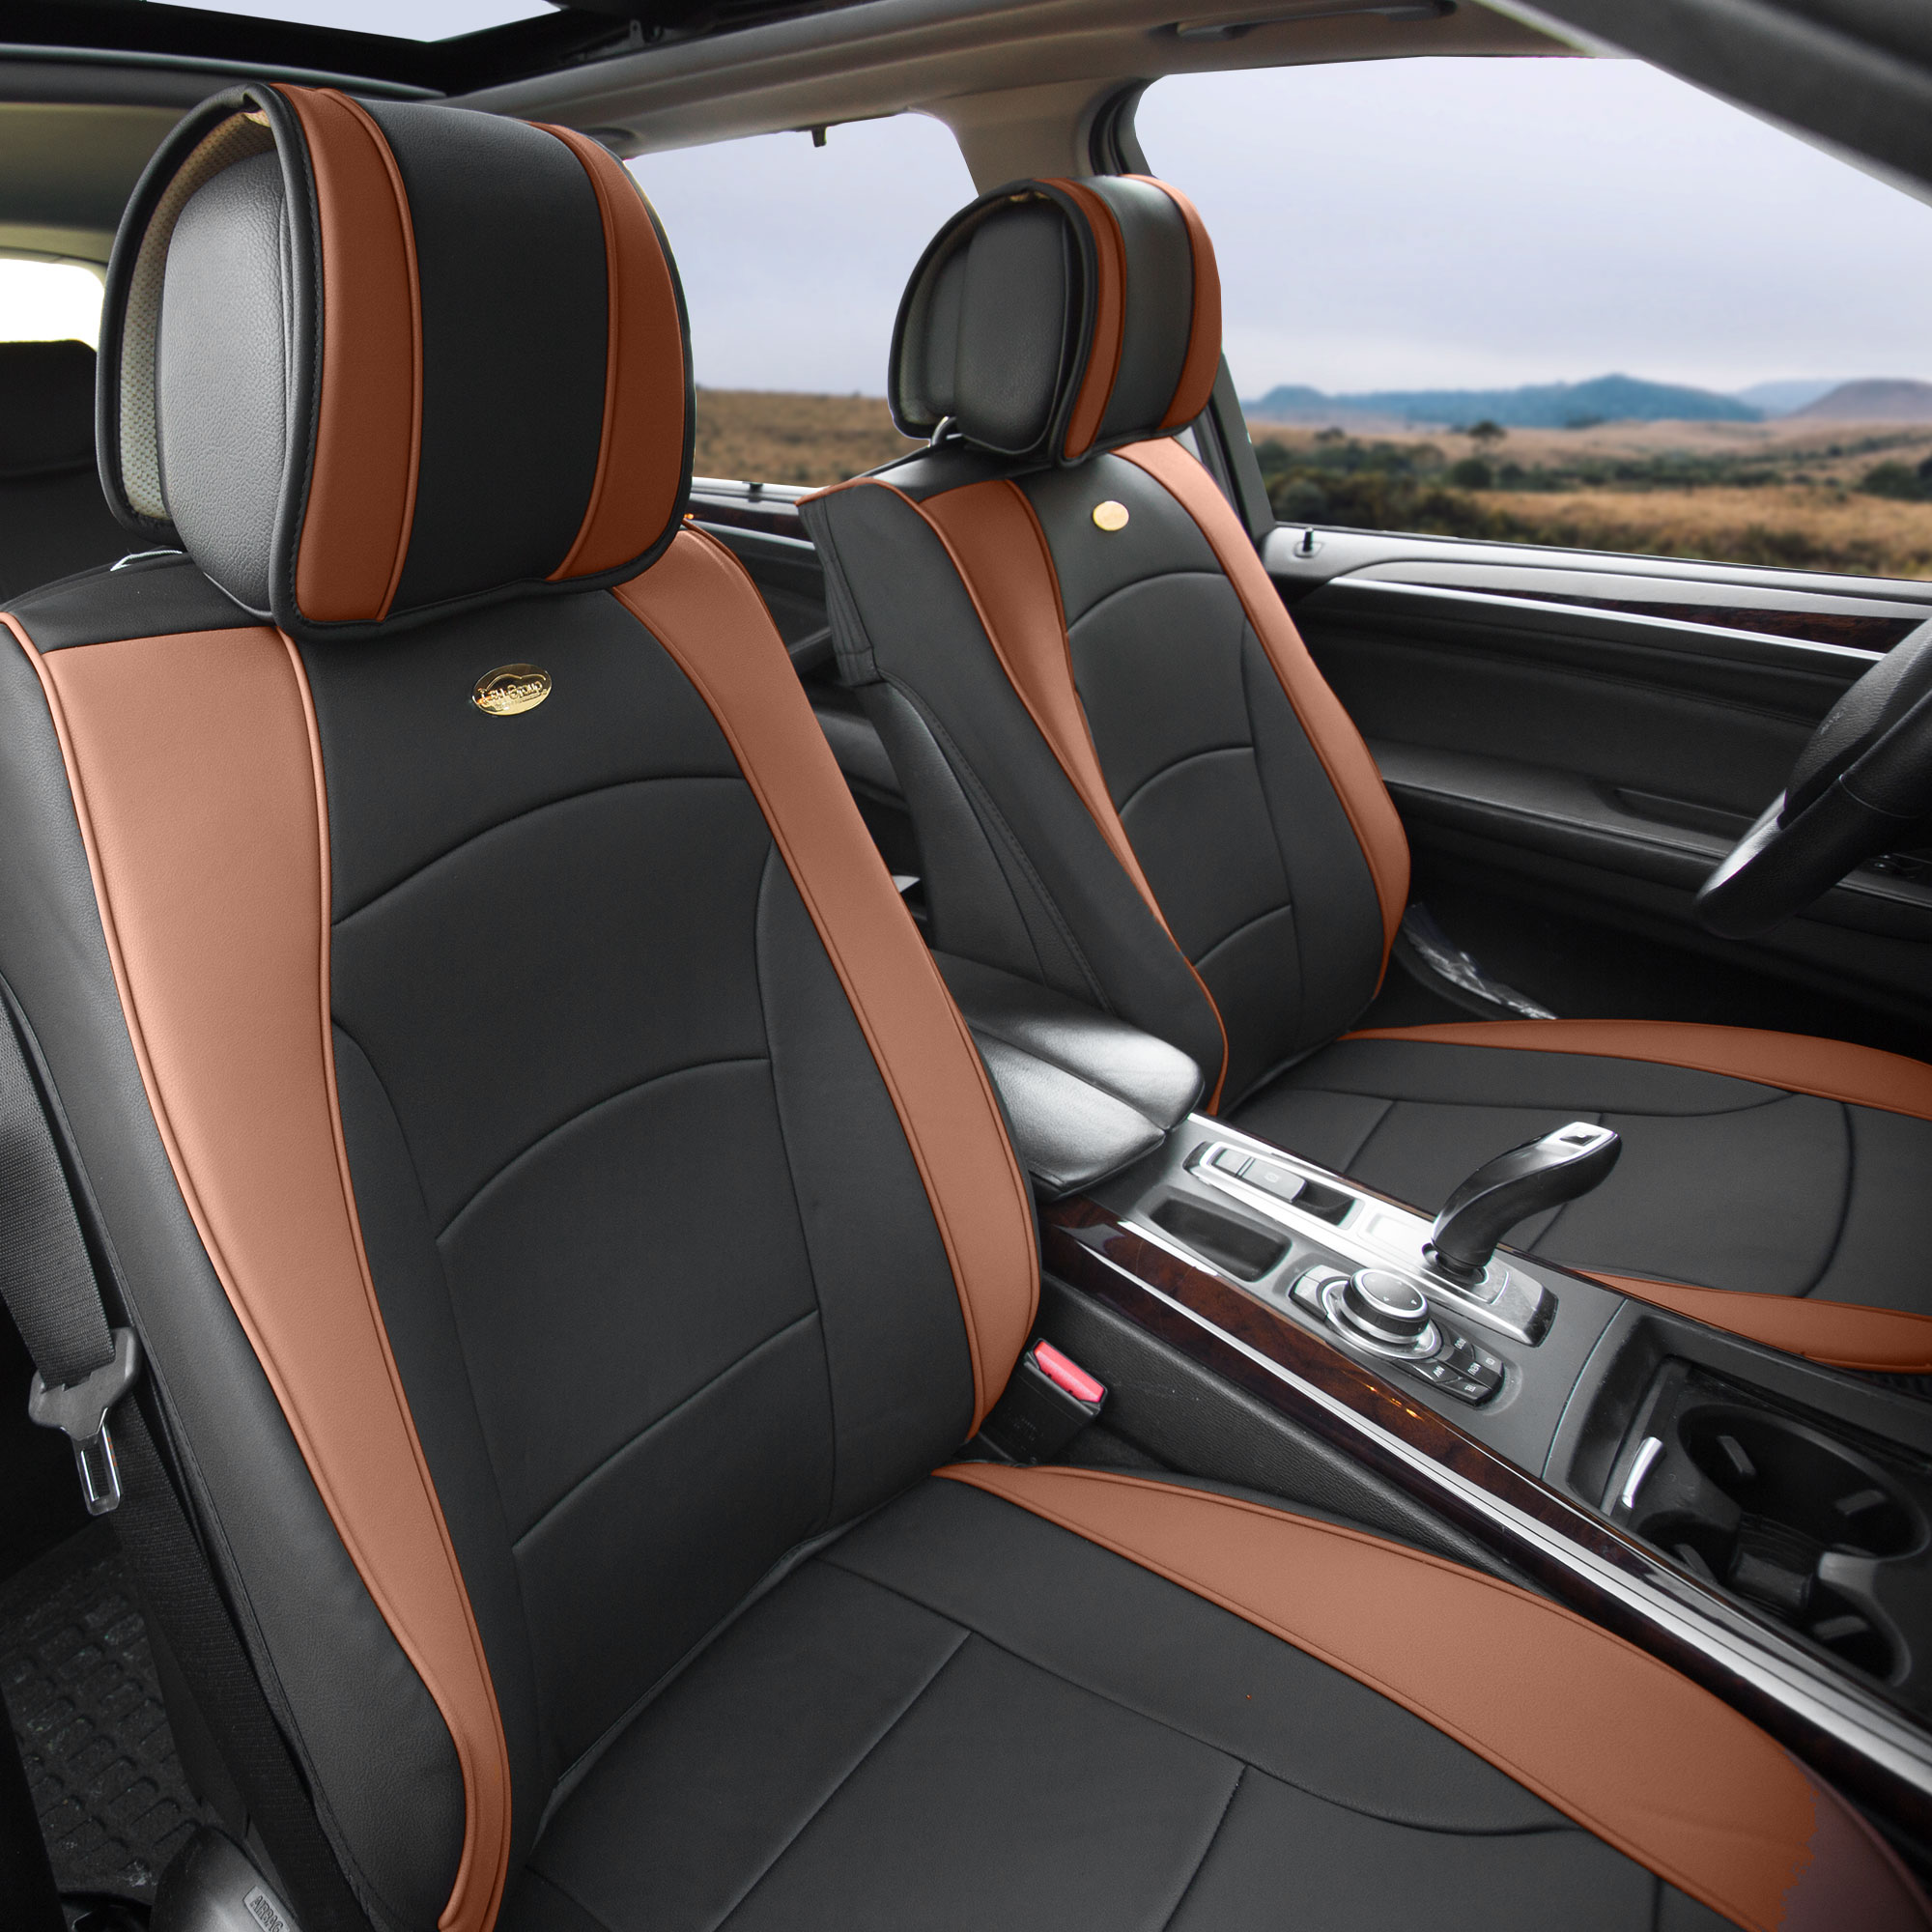 Luxury-Leather-Seat-Cushion-Covers-Front-Bucket-Pair-11-Color-Options thumbnail 24